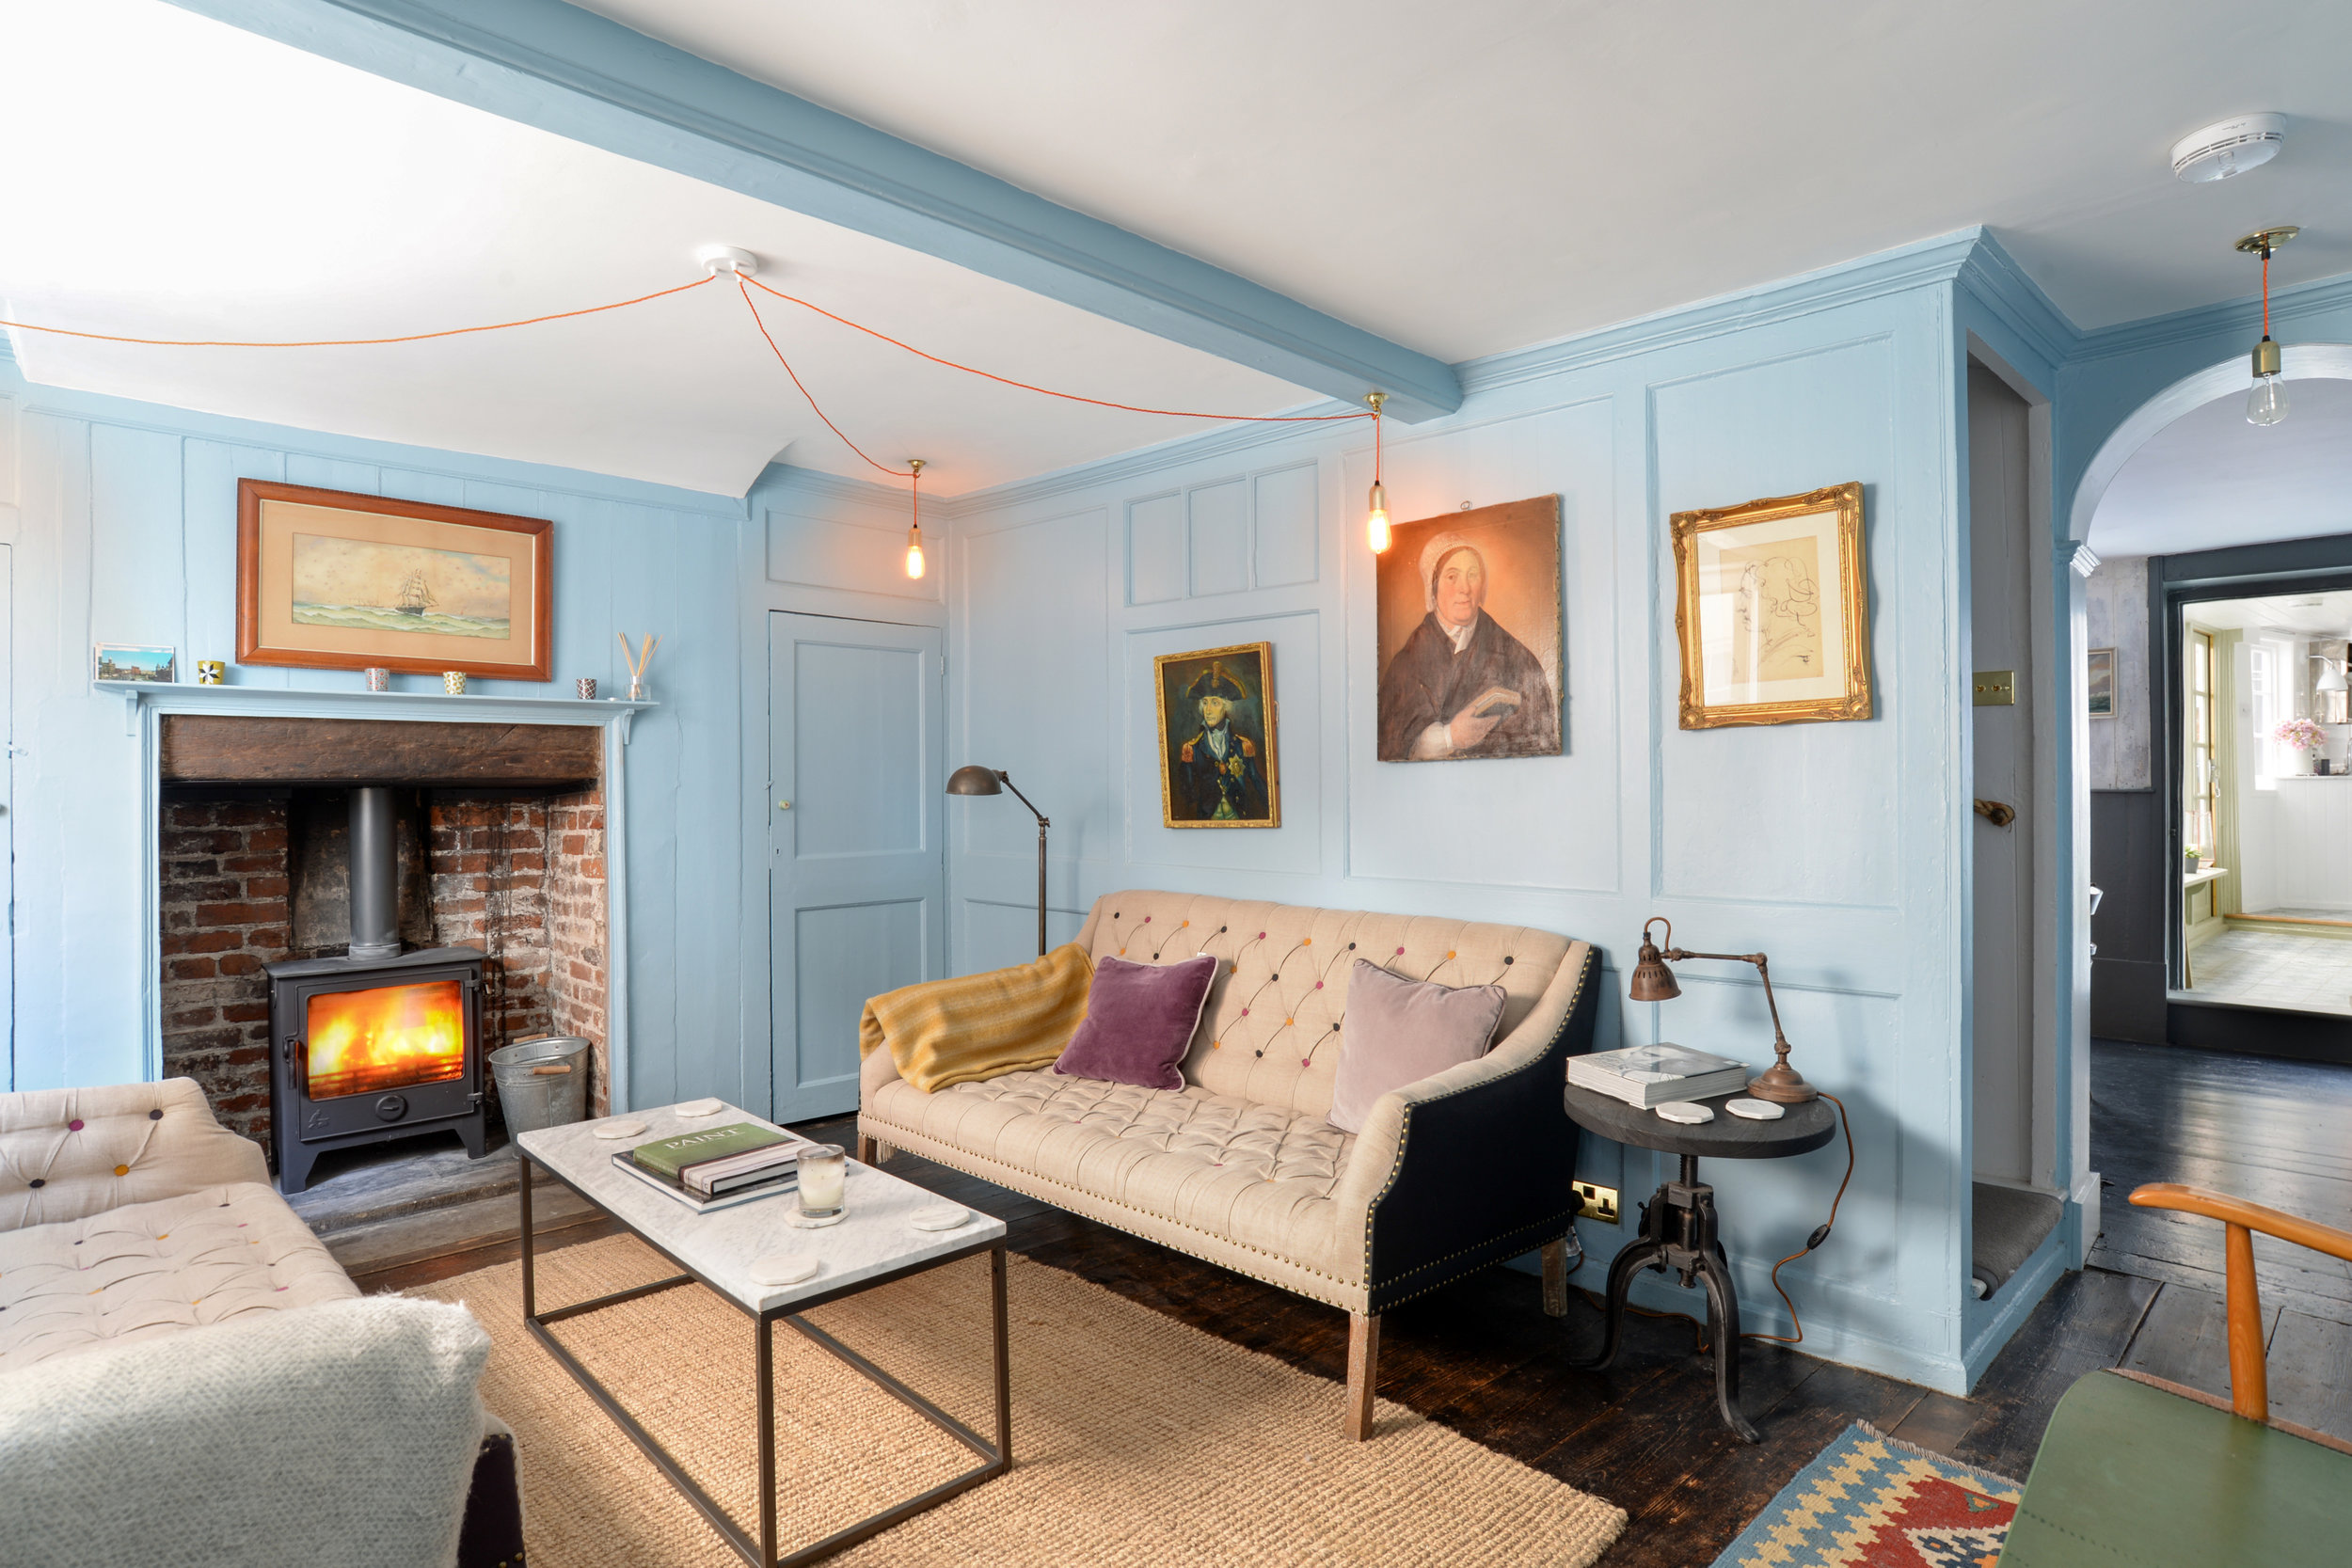 Ground floor - On the ground floor are two impressive Reception rooms - a grandiose living room and a resplendent dining room with cosy wood burner stocked with logs and kindling - and a delightful kitchen that overlooks the enclosed contemporary styled courtyard to the rear.The living room comes complete with an attractive open brick fireplace anddouble sash windows overlooking Farrier Street, two trendy three seater sofas and the most exquisite nautical themed artwork hung from the beautiful wood panelled walls.